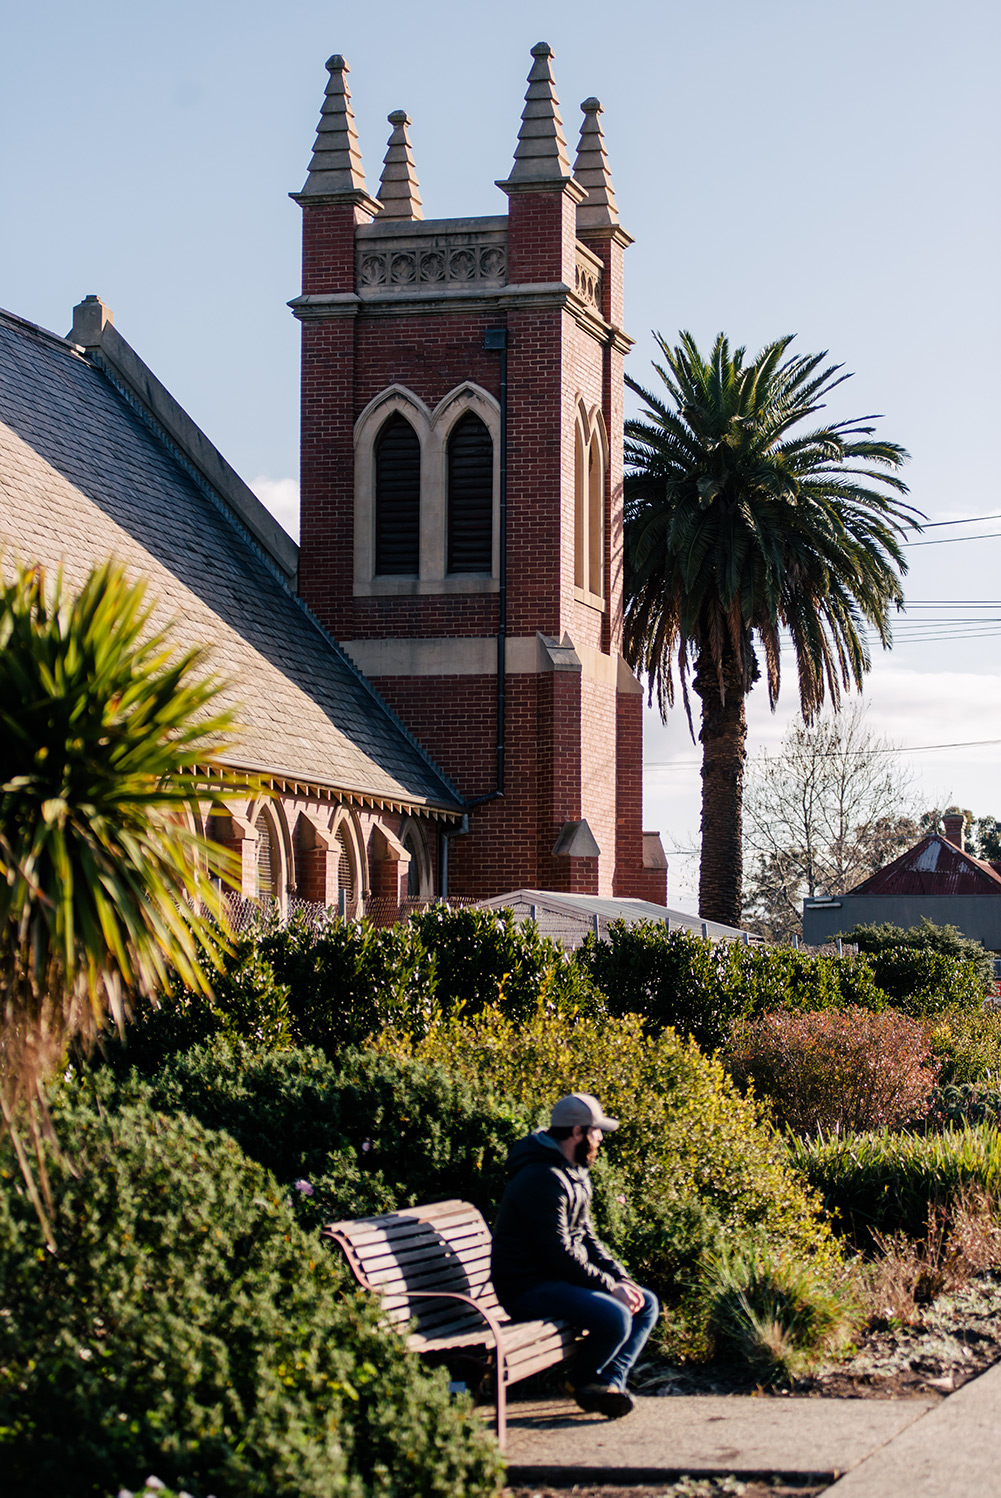 man sitting on bench in front of church